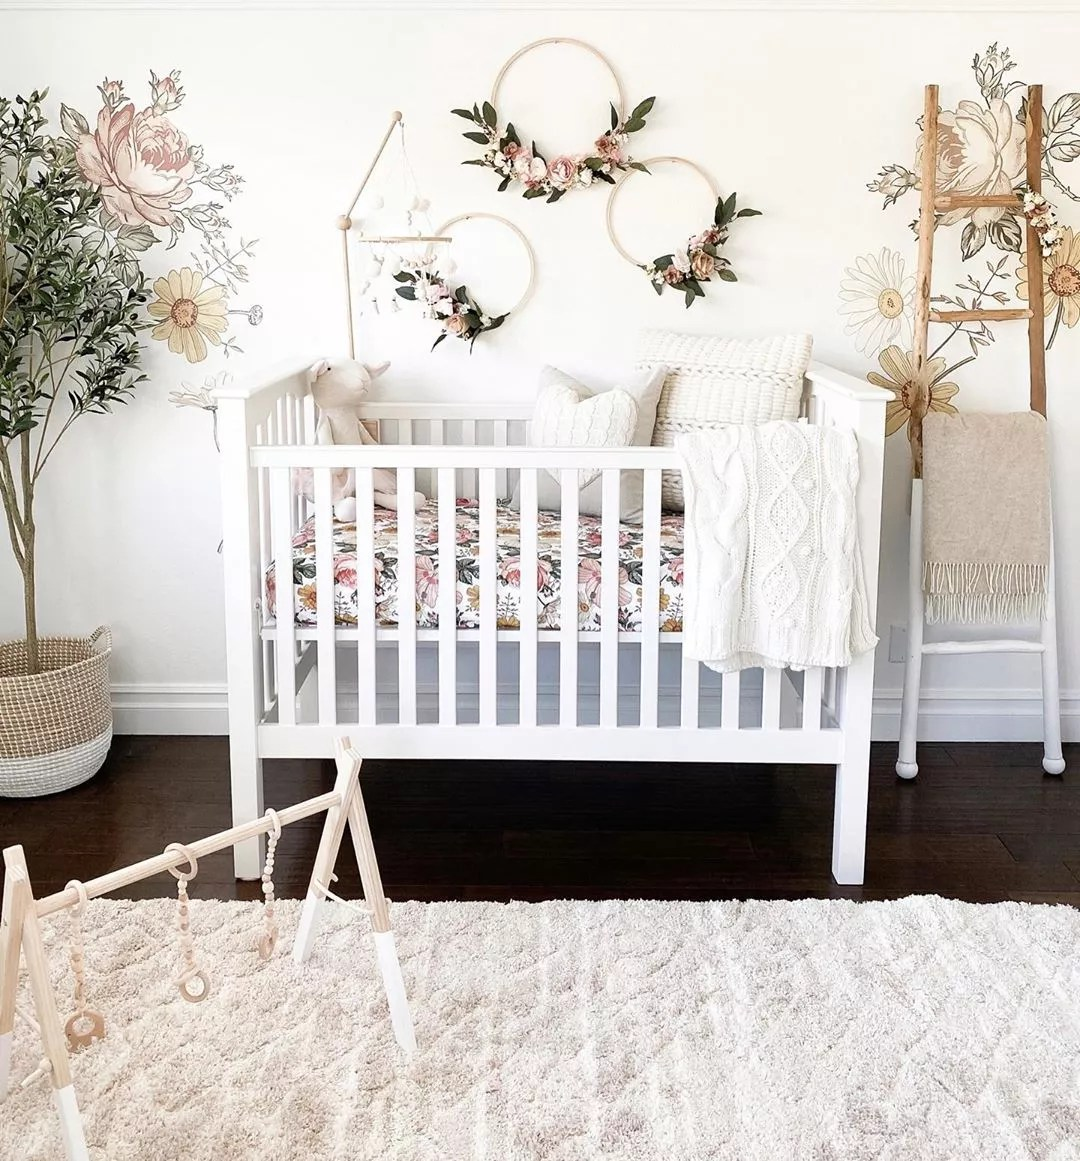 Floral themed nursery. Photo by Instagram user @house.becomes.home